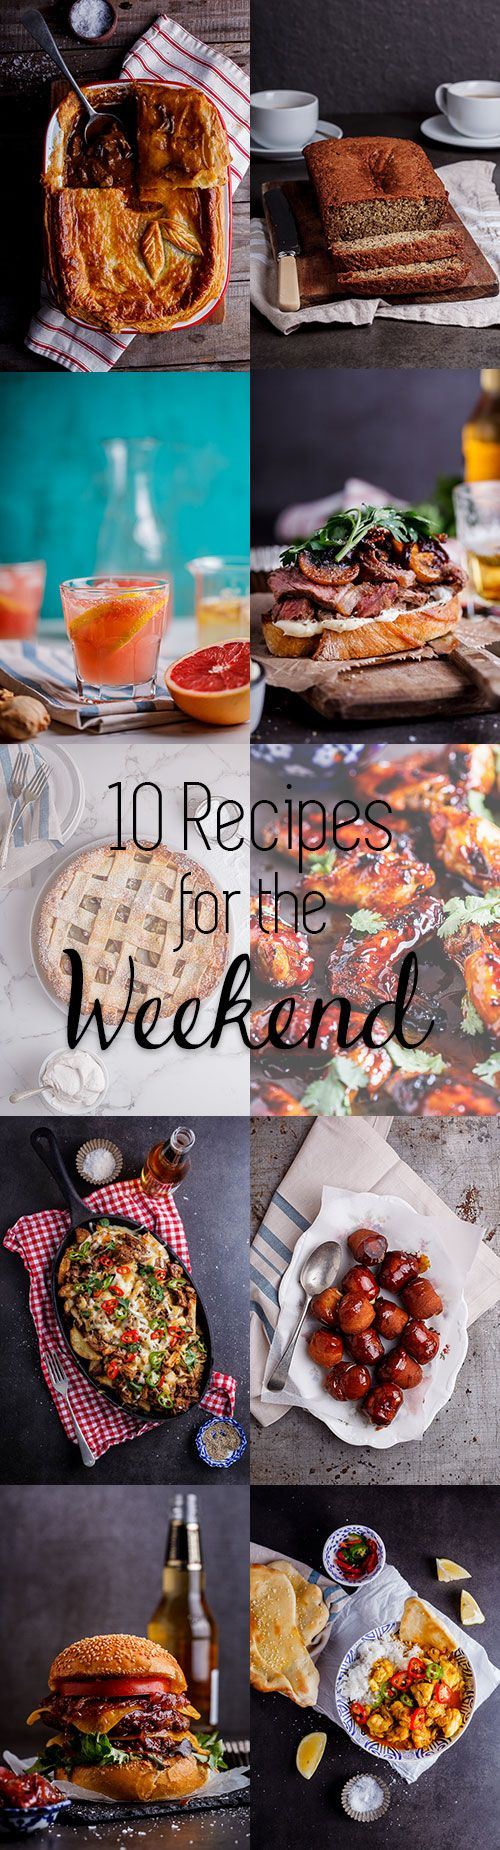 10 Recipes for the weekend